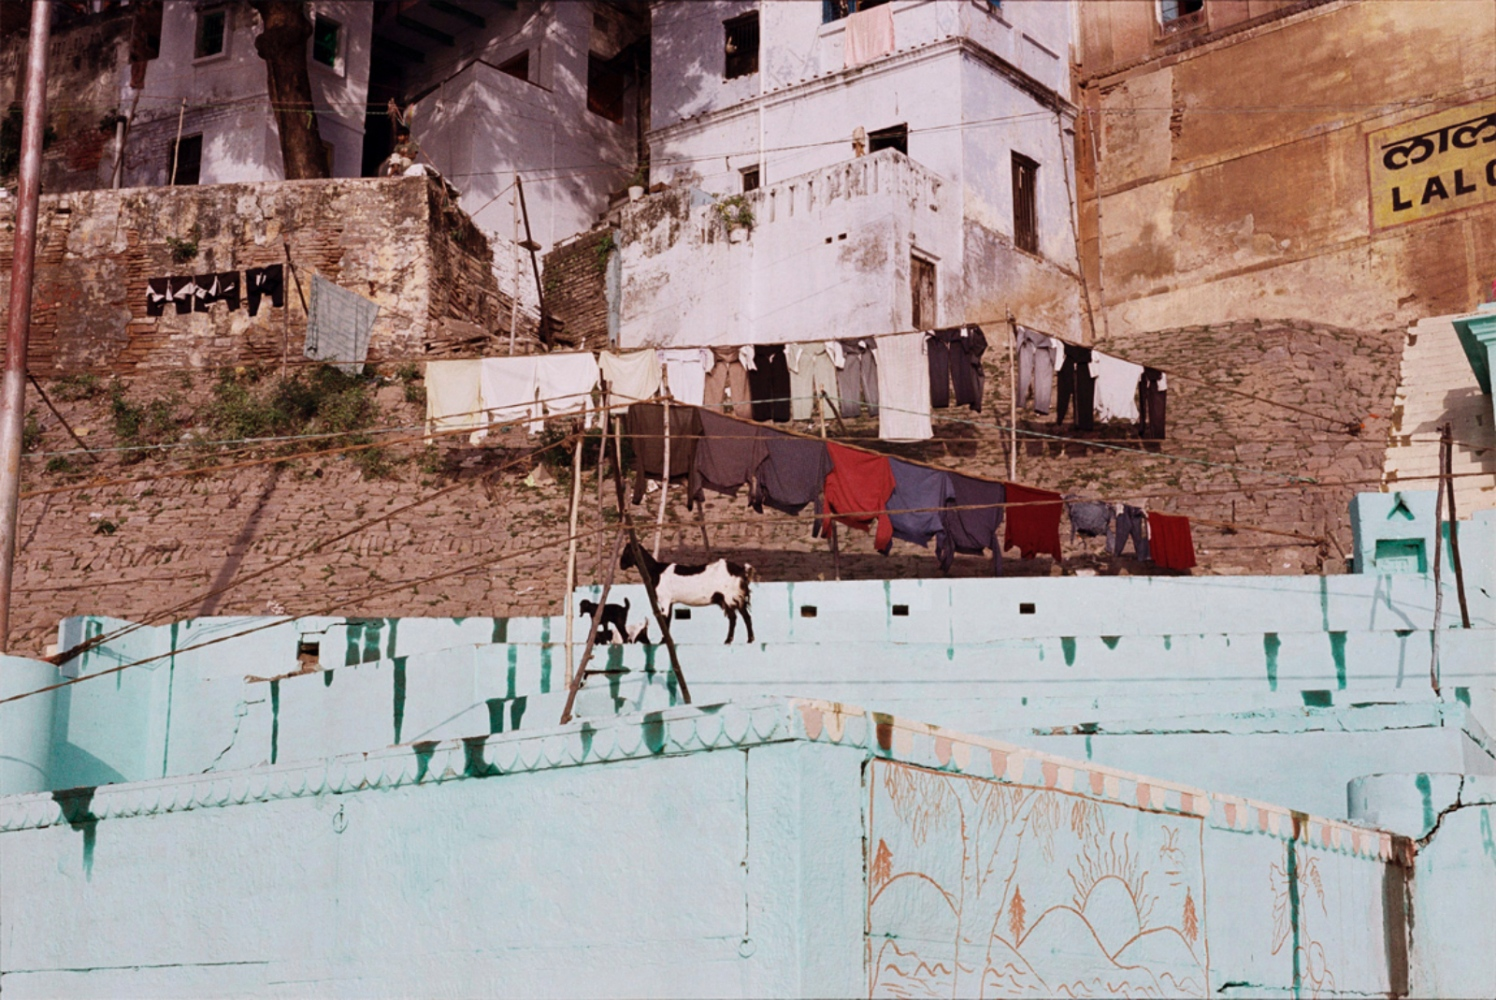 Goat and Laundry, Varanasi, India, November 2003